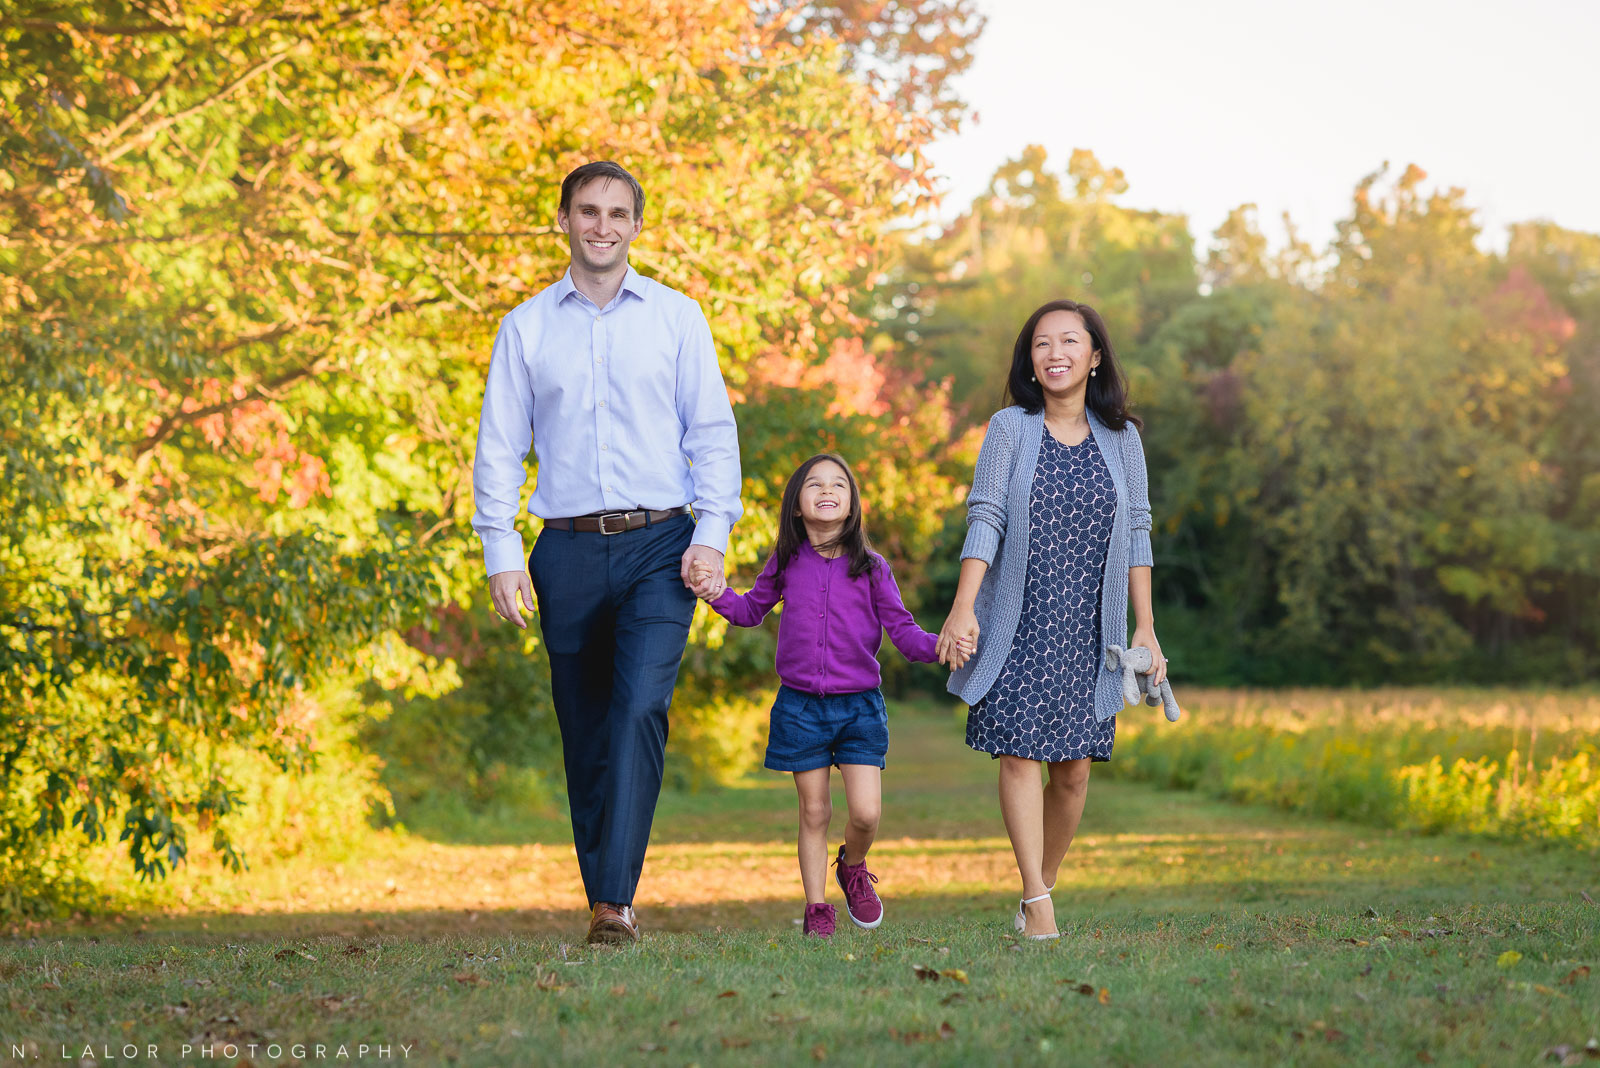 Fun and lovely lifestyle family photo at Waveny Park New Canaan Connecticut by N. Lalor Photography.